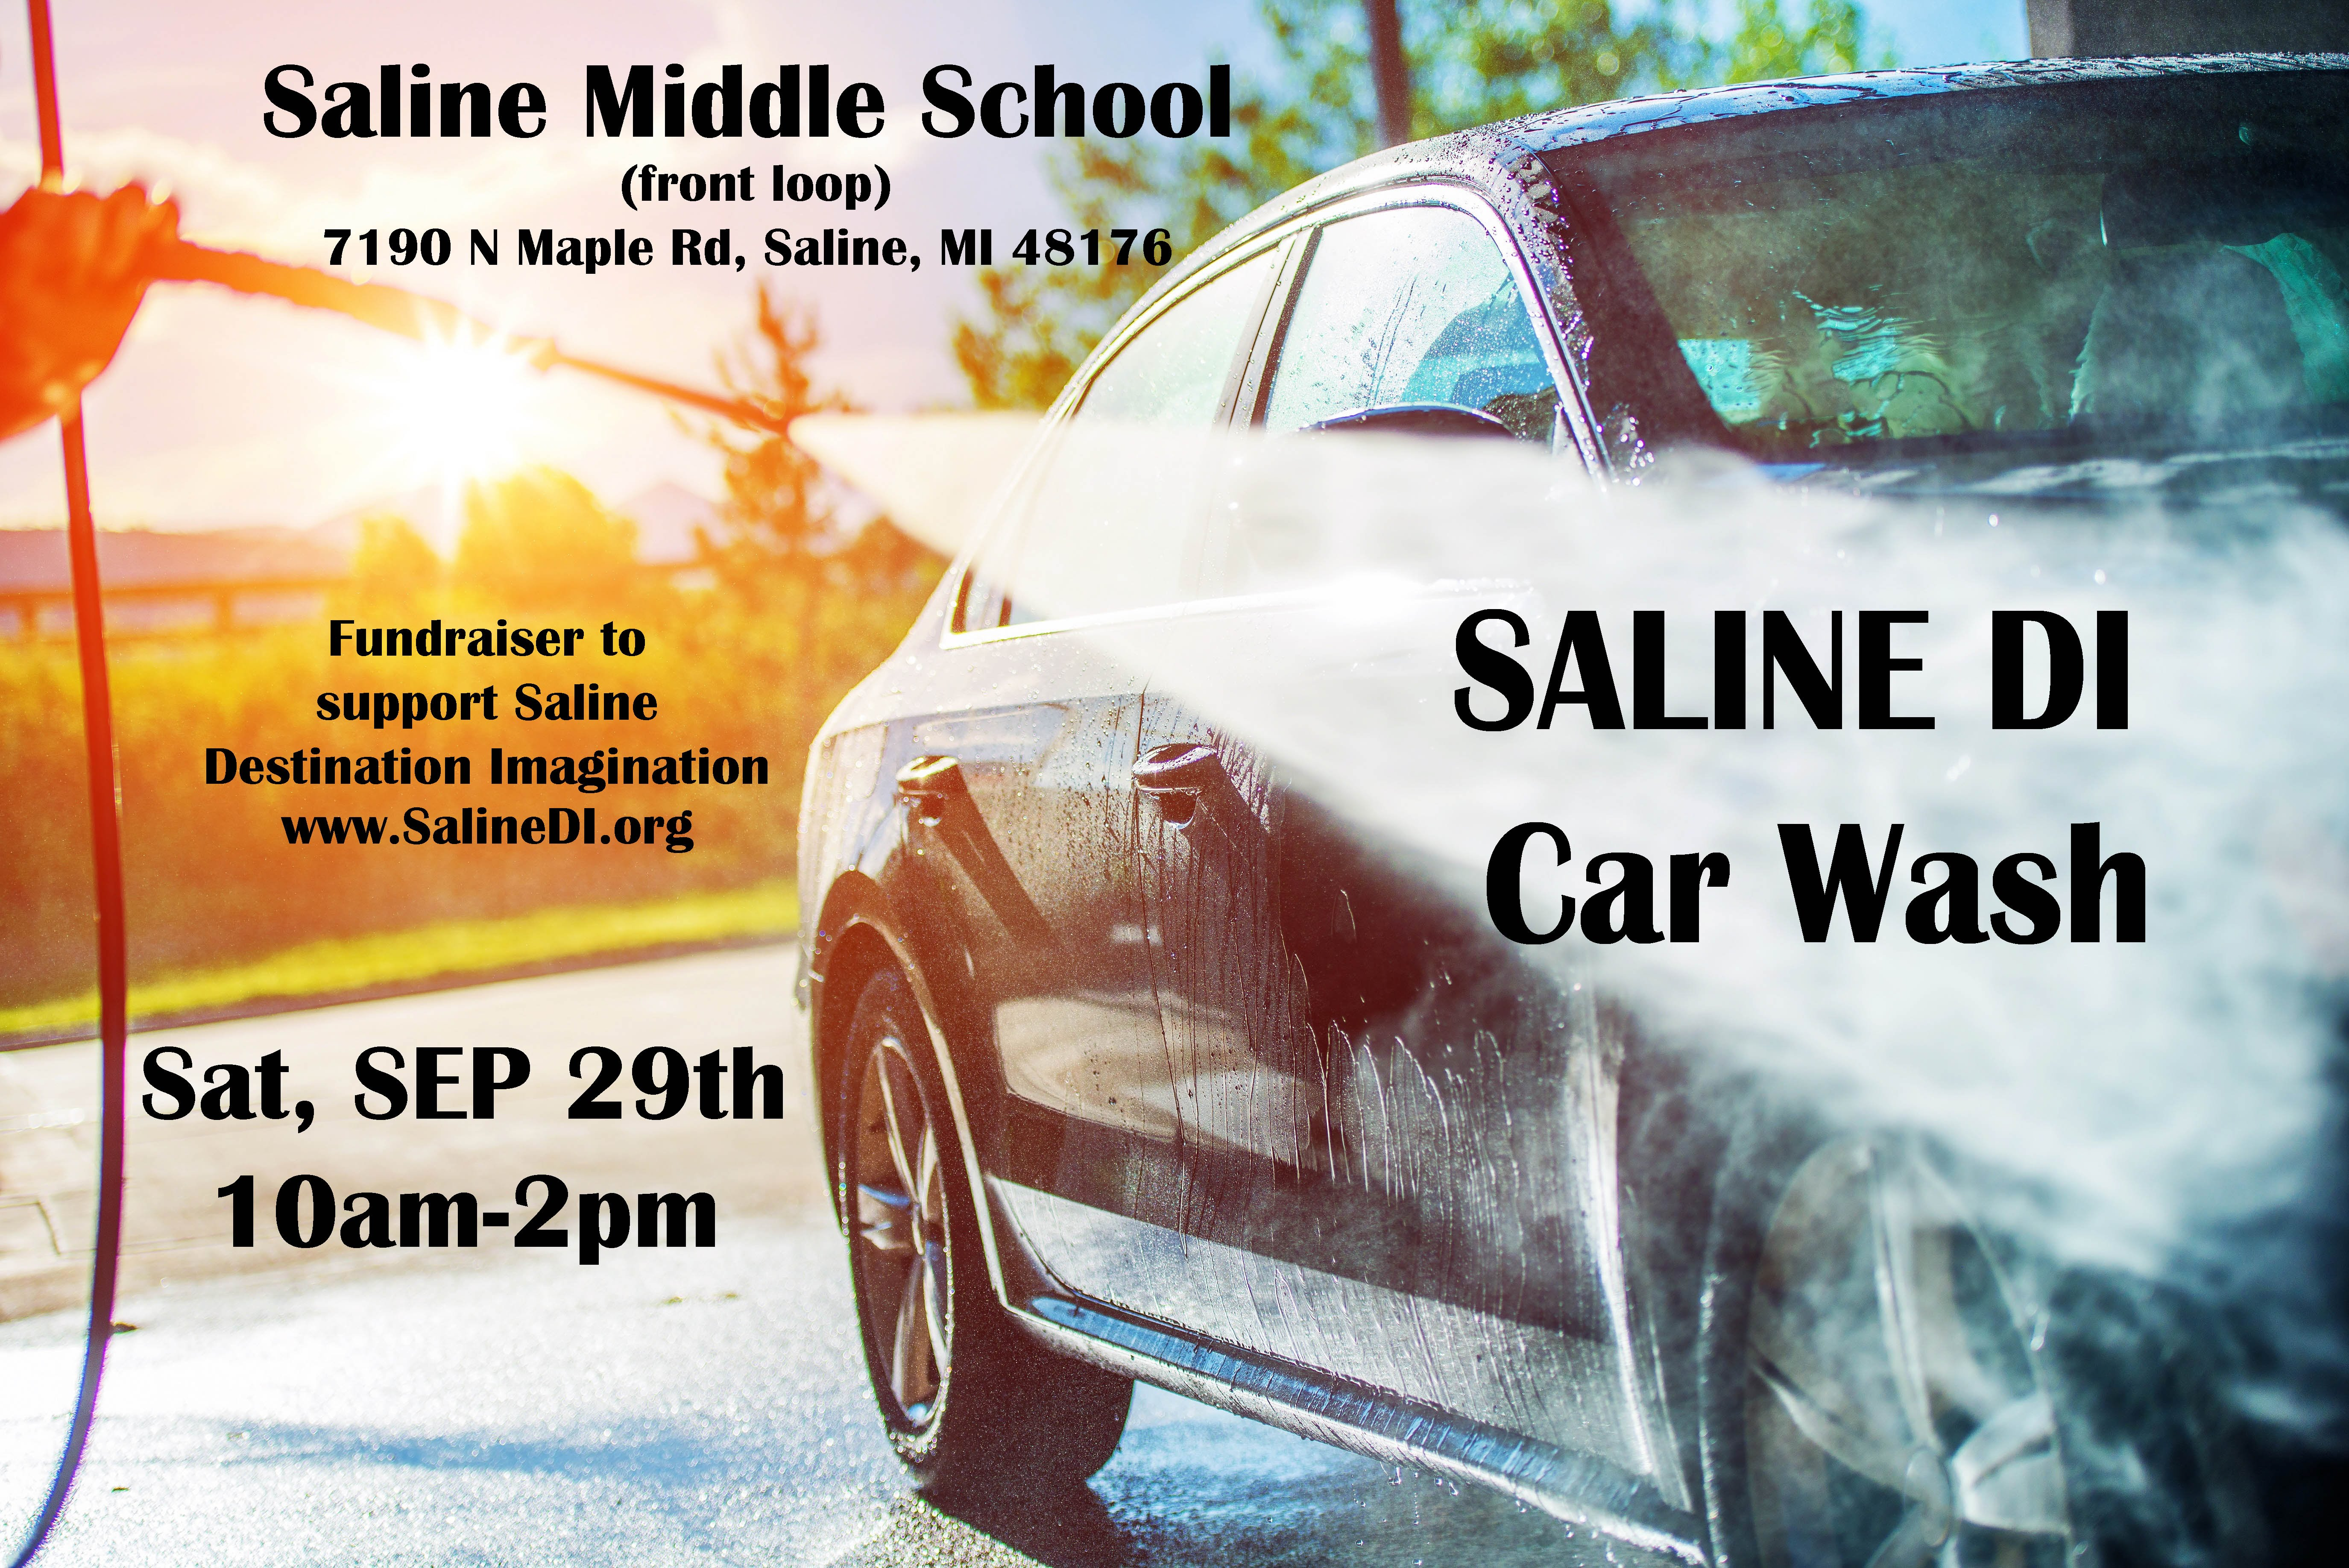 Car wash 9/29 from 10am to 2pm at Saline Middle School